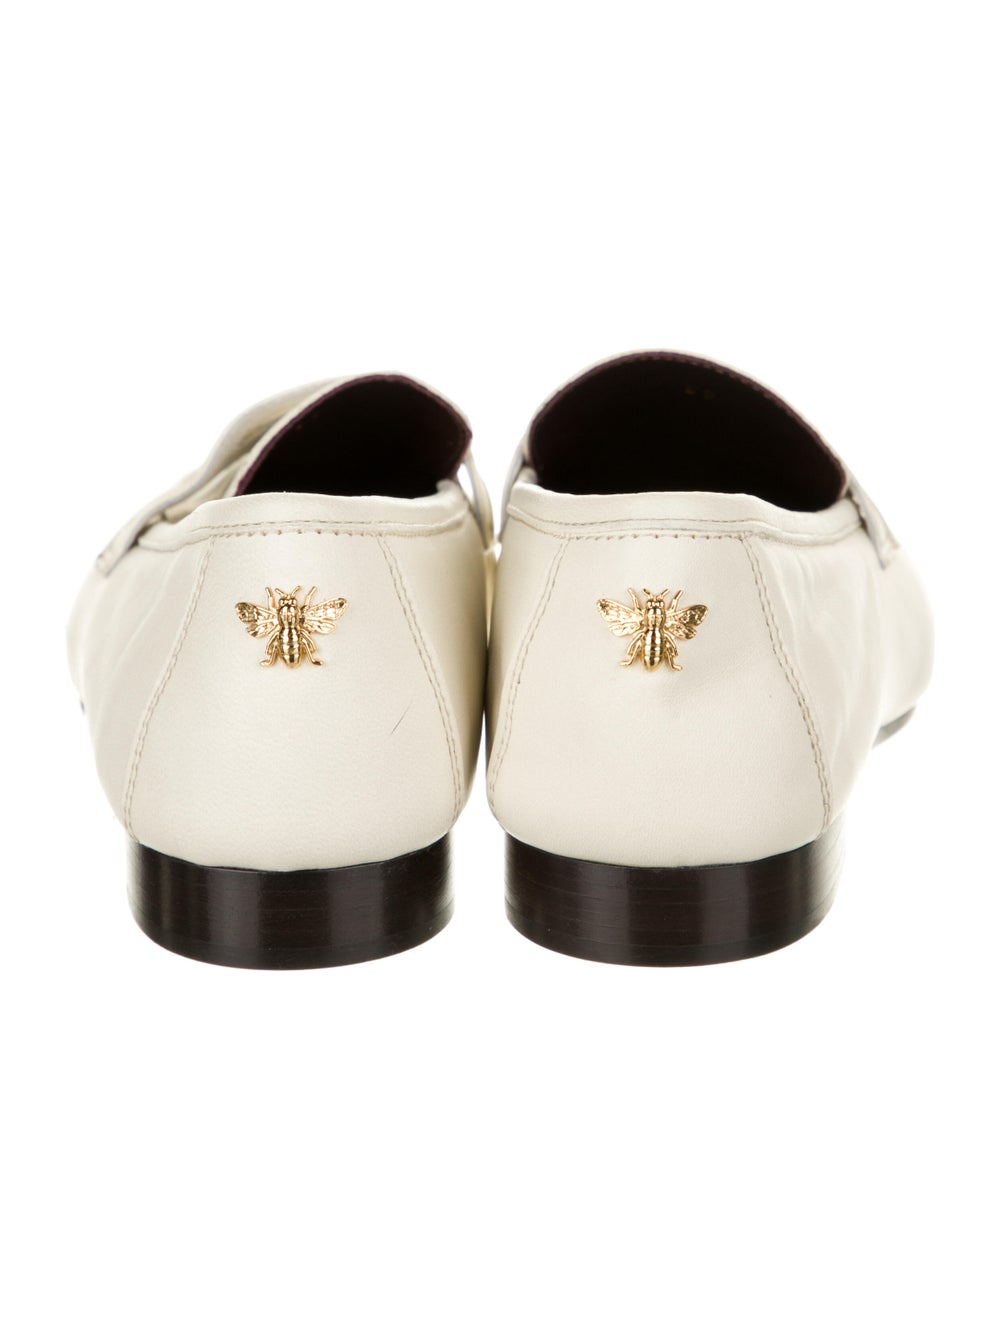 Bougeotte Loafers - image 4